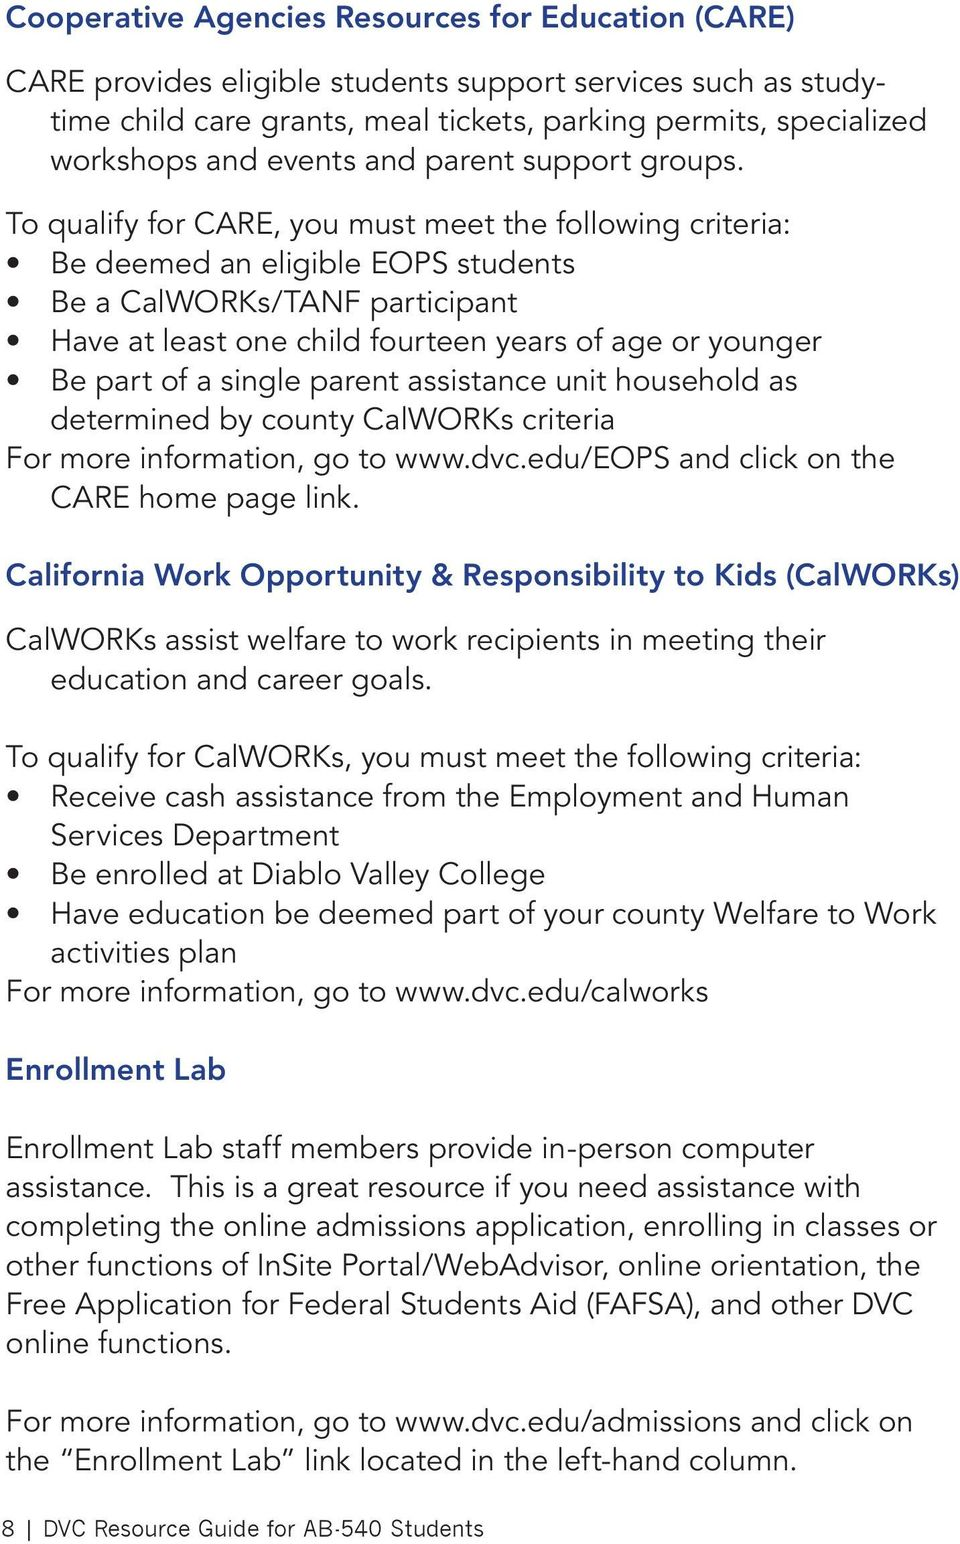 To qualify for CARE, you must meet the following criteria: Be deemed an eligible EOPS students Be a CalWORKs/TANF participant Have at least one child fourteen years of age or younger Be part of a